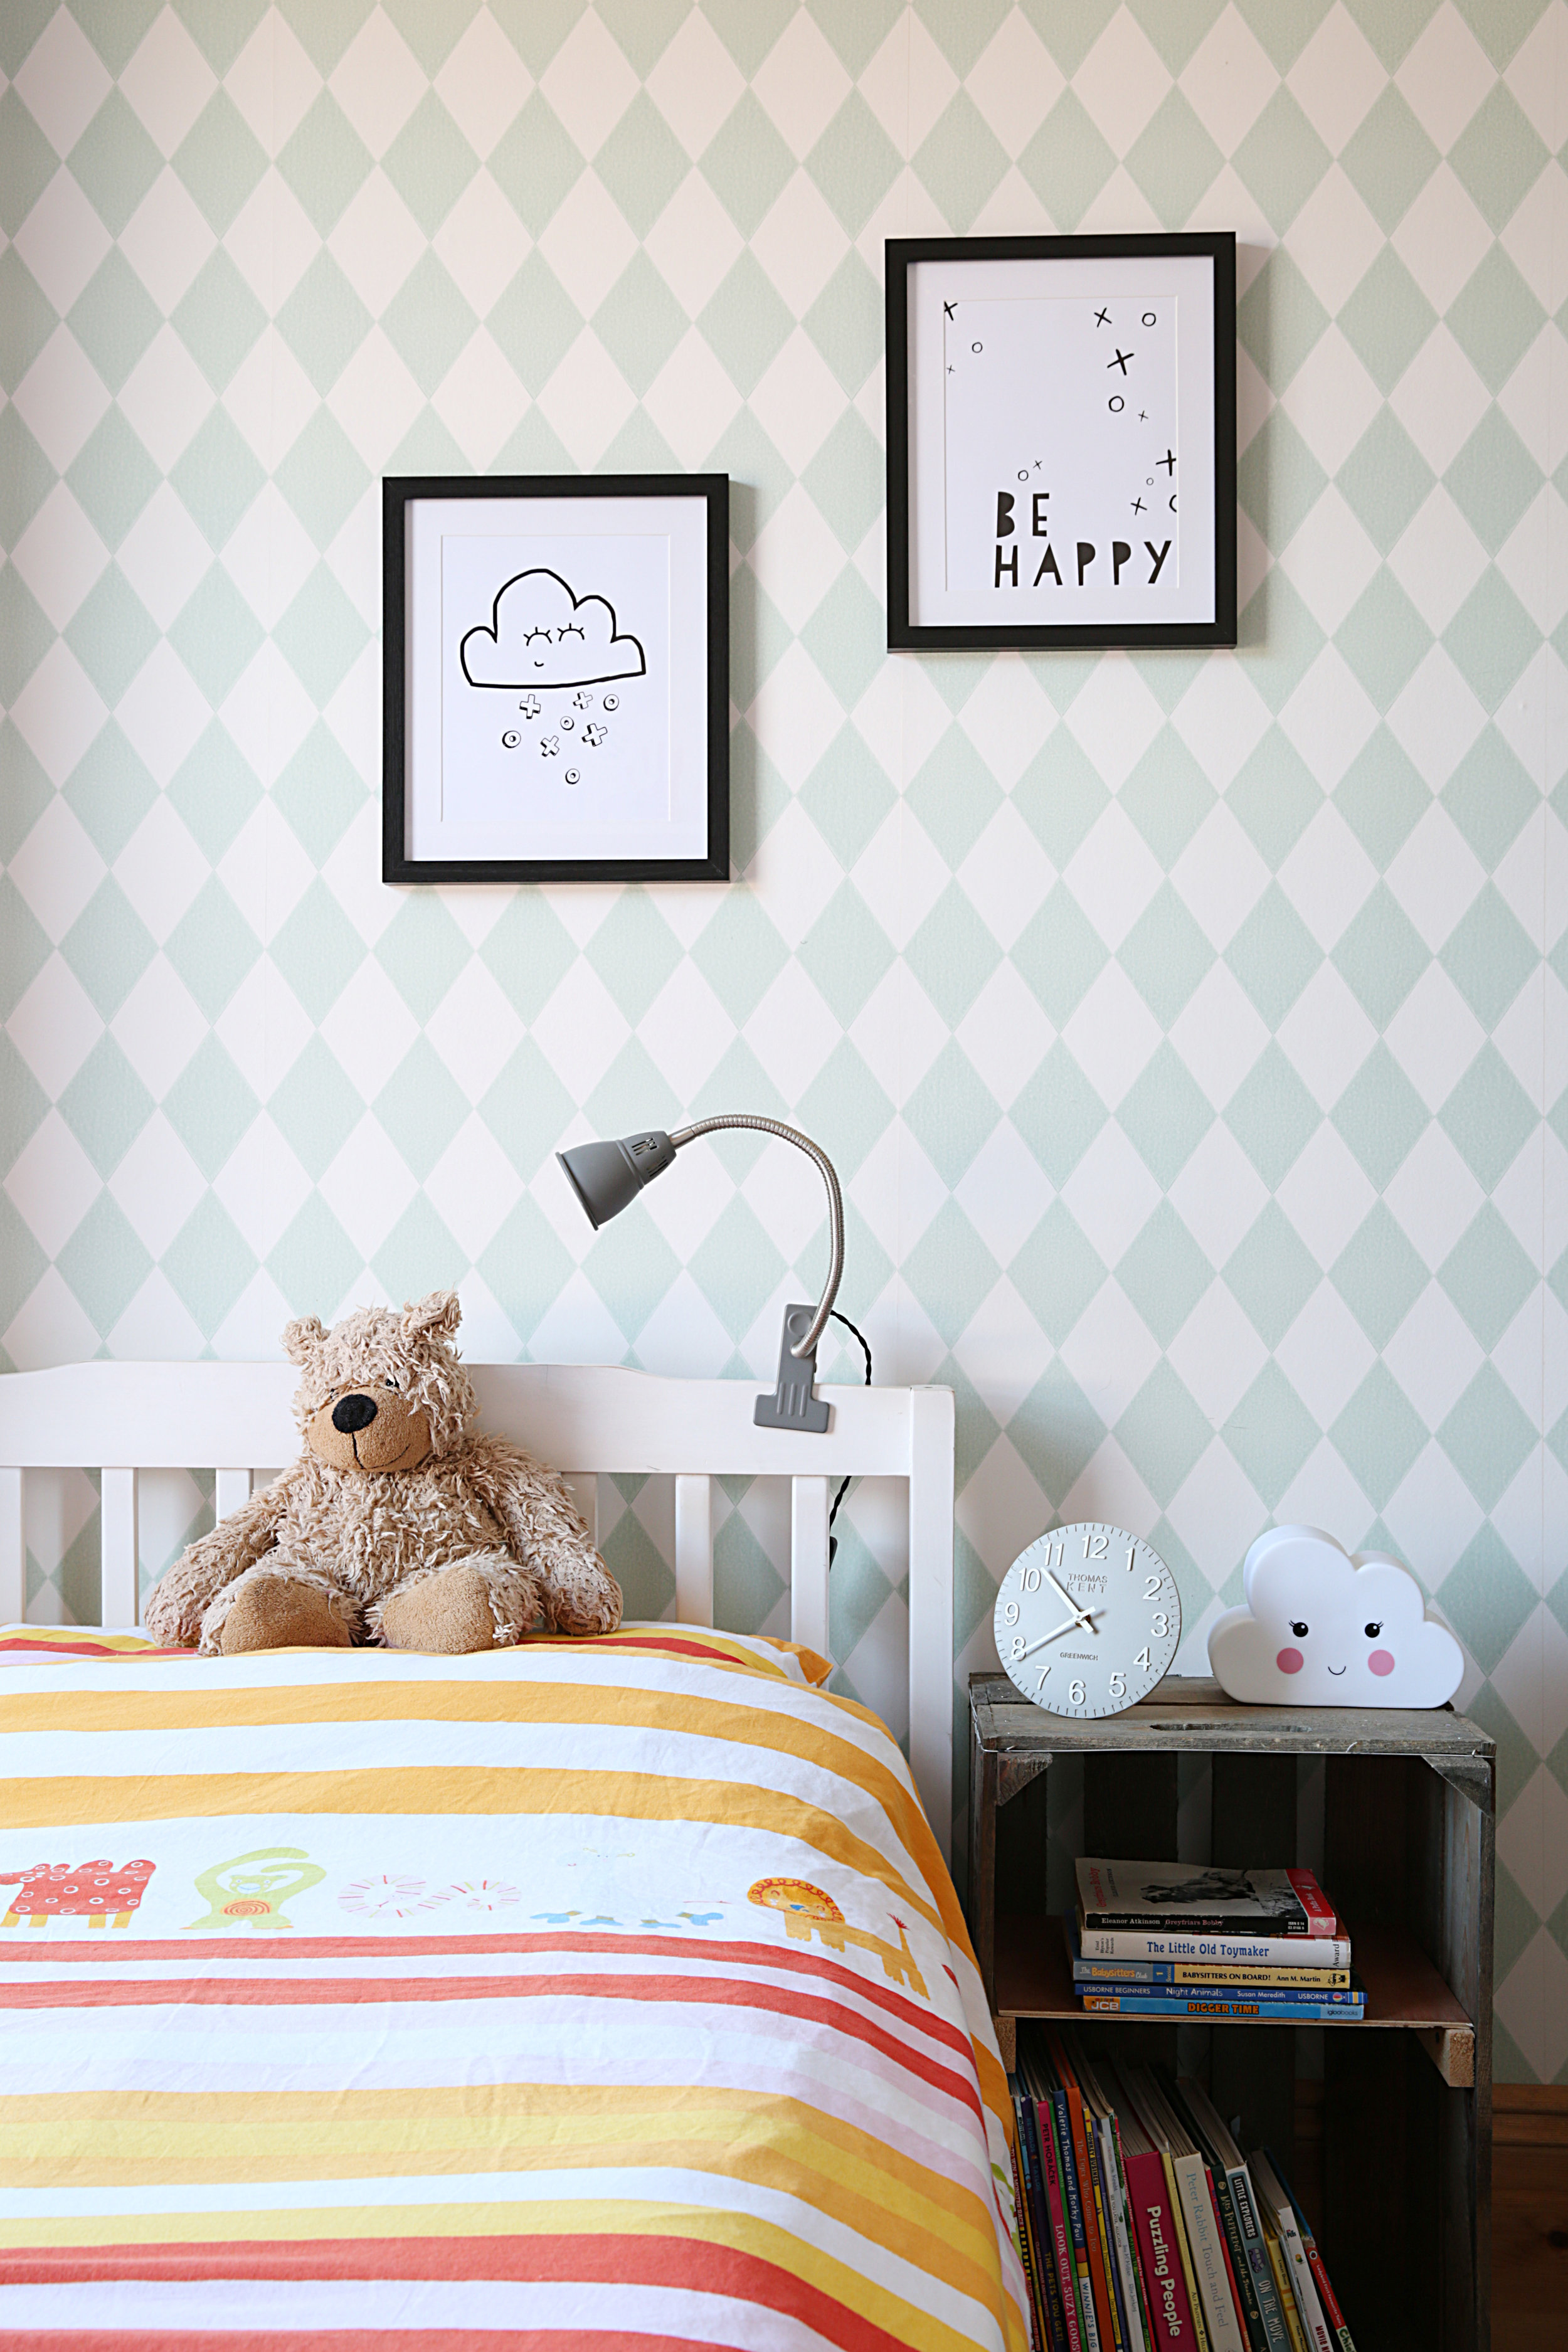 Another child's bedroom